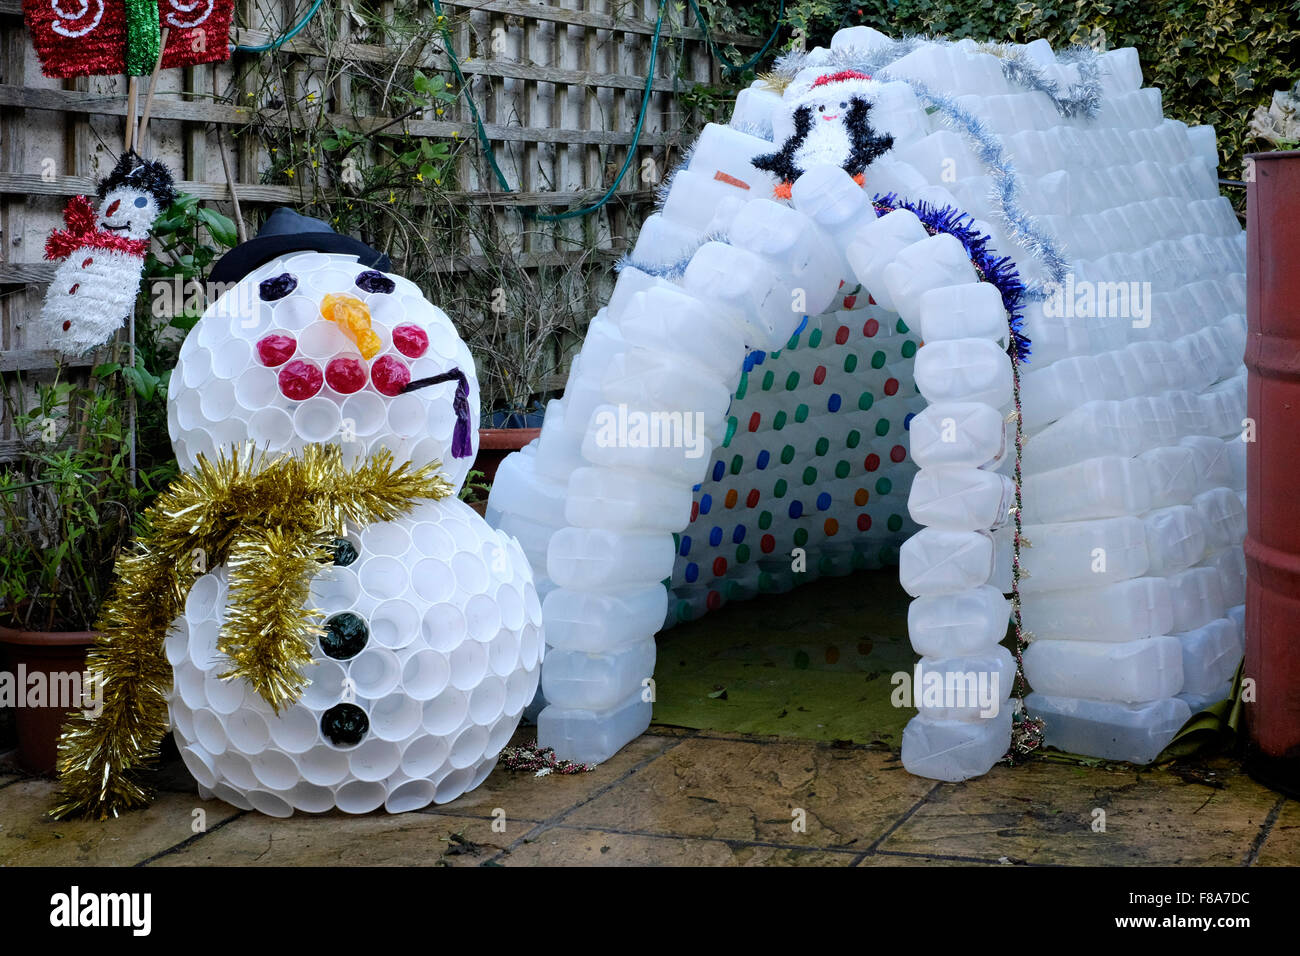 Christmas garden igloo and snowman decorations made from plastic milk - Christmas Garden Igloo And Snowman Decoration Made From